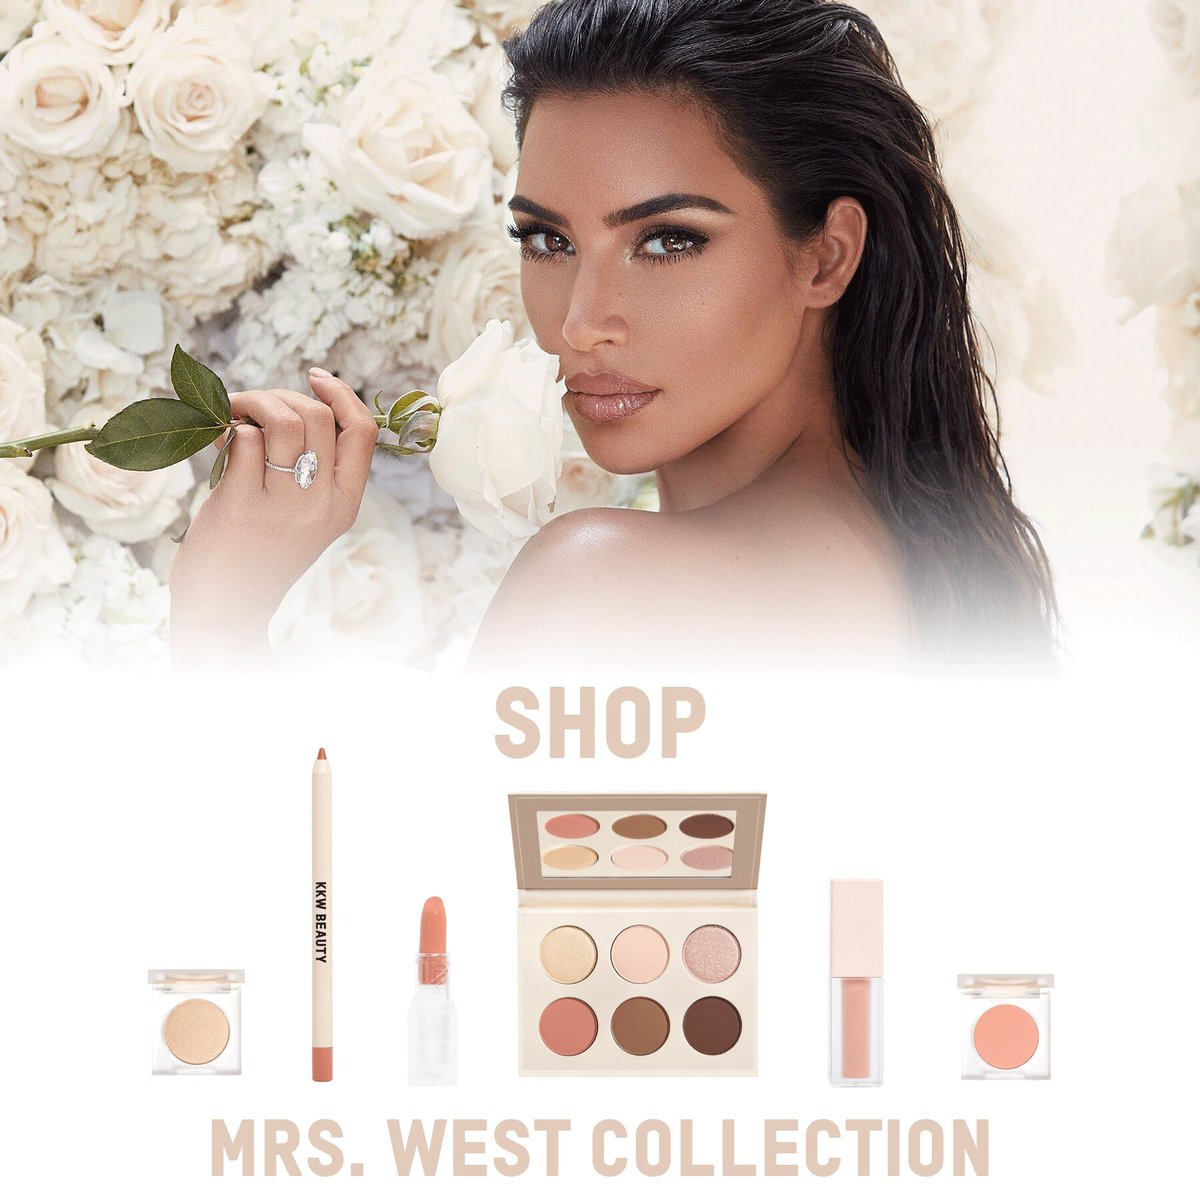 Shop The Mrs. West Collection by @kkwbeauty now only at http://KKWBEAUTY.COM #KKWBEAUTY